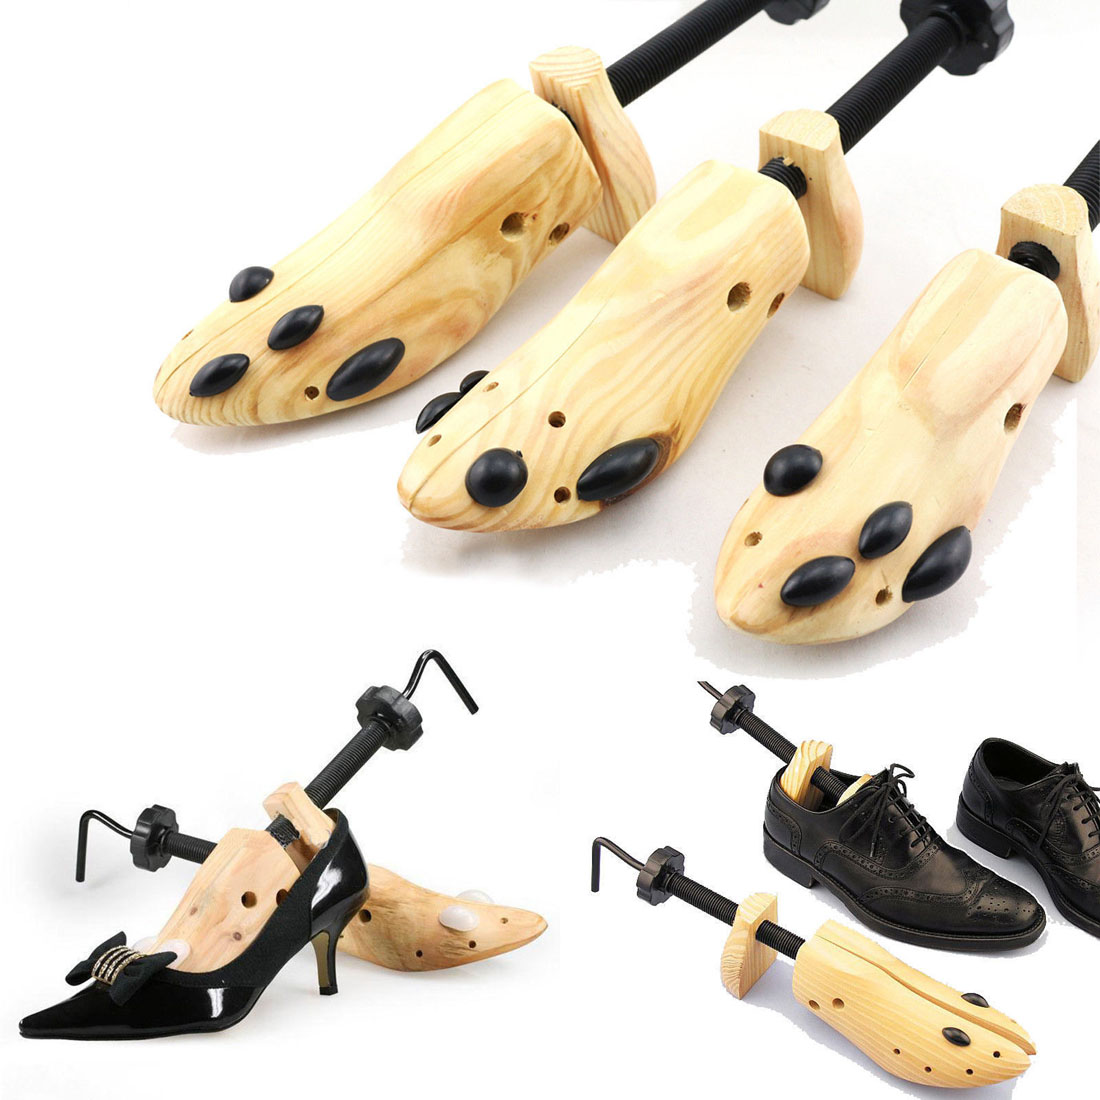 1Pc Men Women Wooden Adjustable 2-Way Professional Shoe Stretcher Shaper Shoe Tree Holder For Boot Shoe Expander Extender Keeper